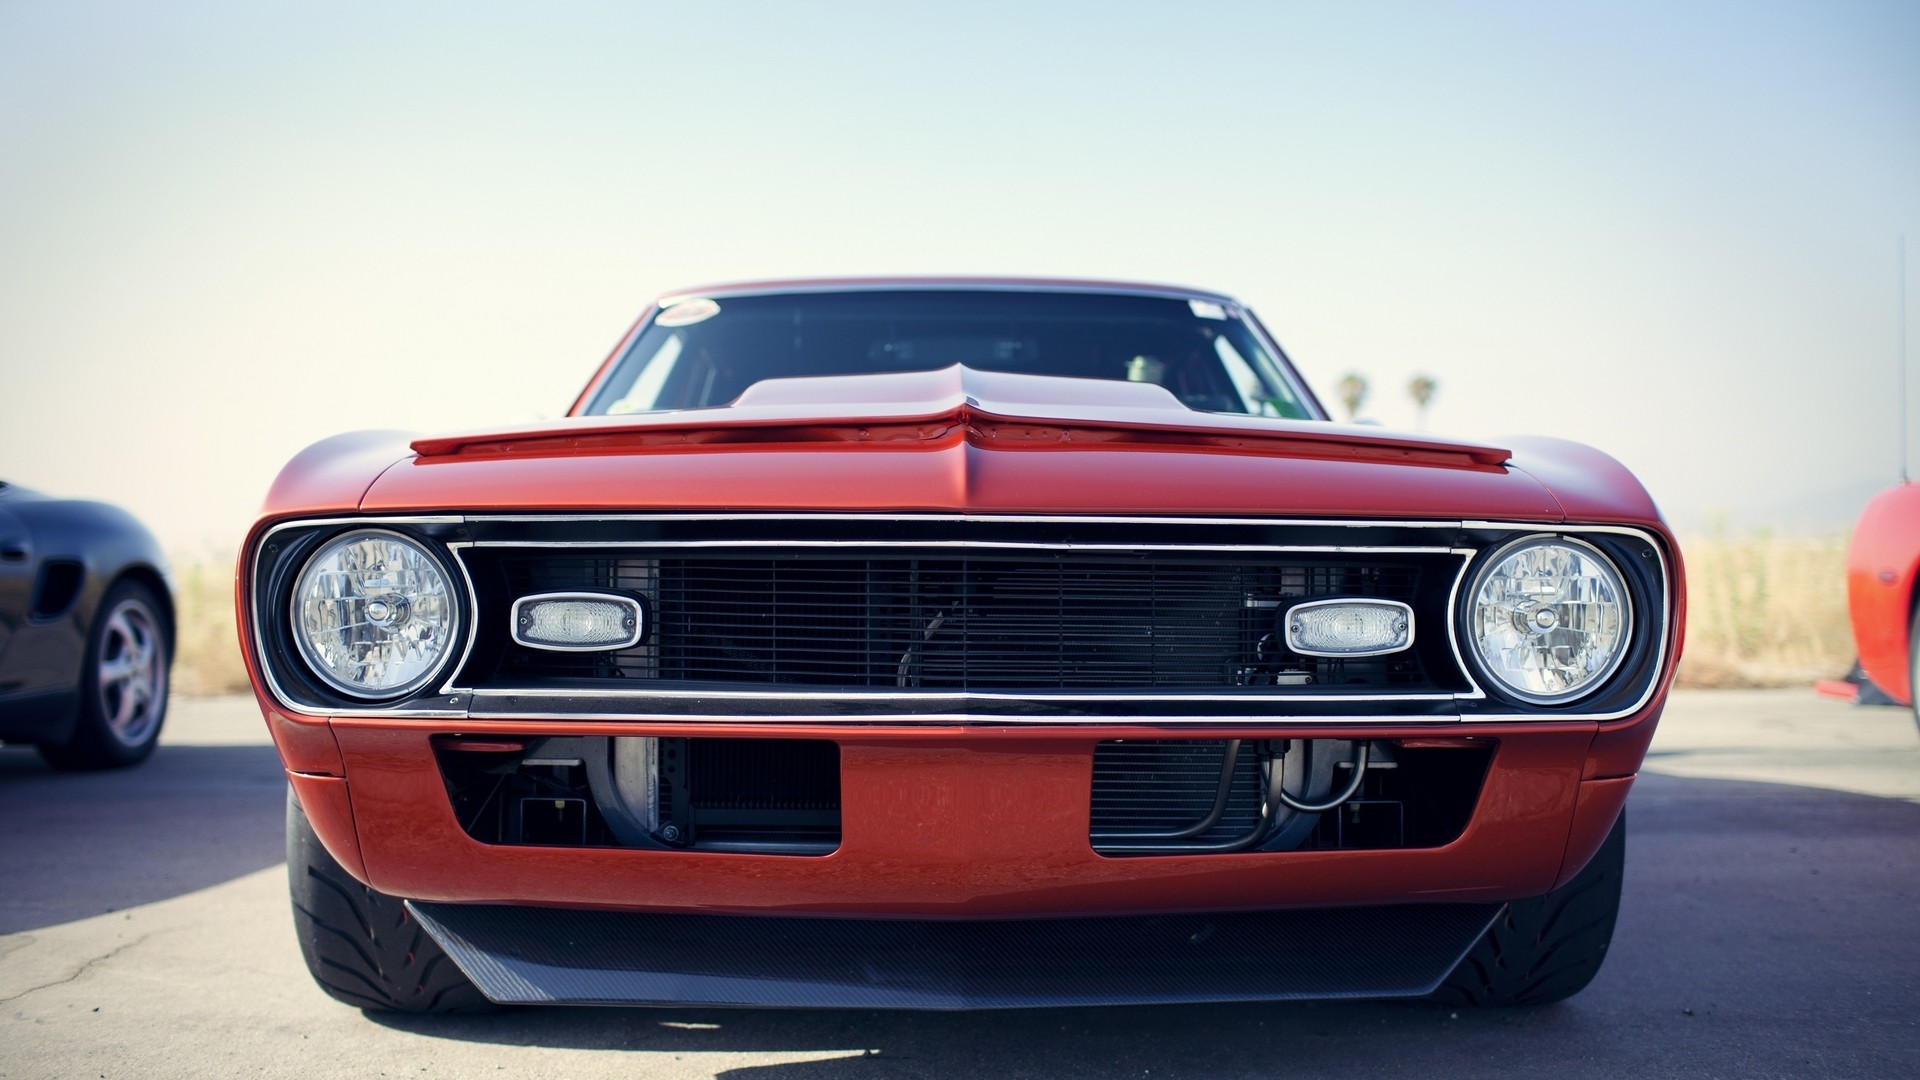 Cars Muscle Wallpaper 1920x1080 Cars, Muscle, Cars, Chevrolet, Camaro ...